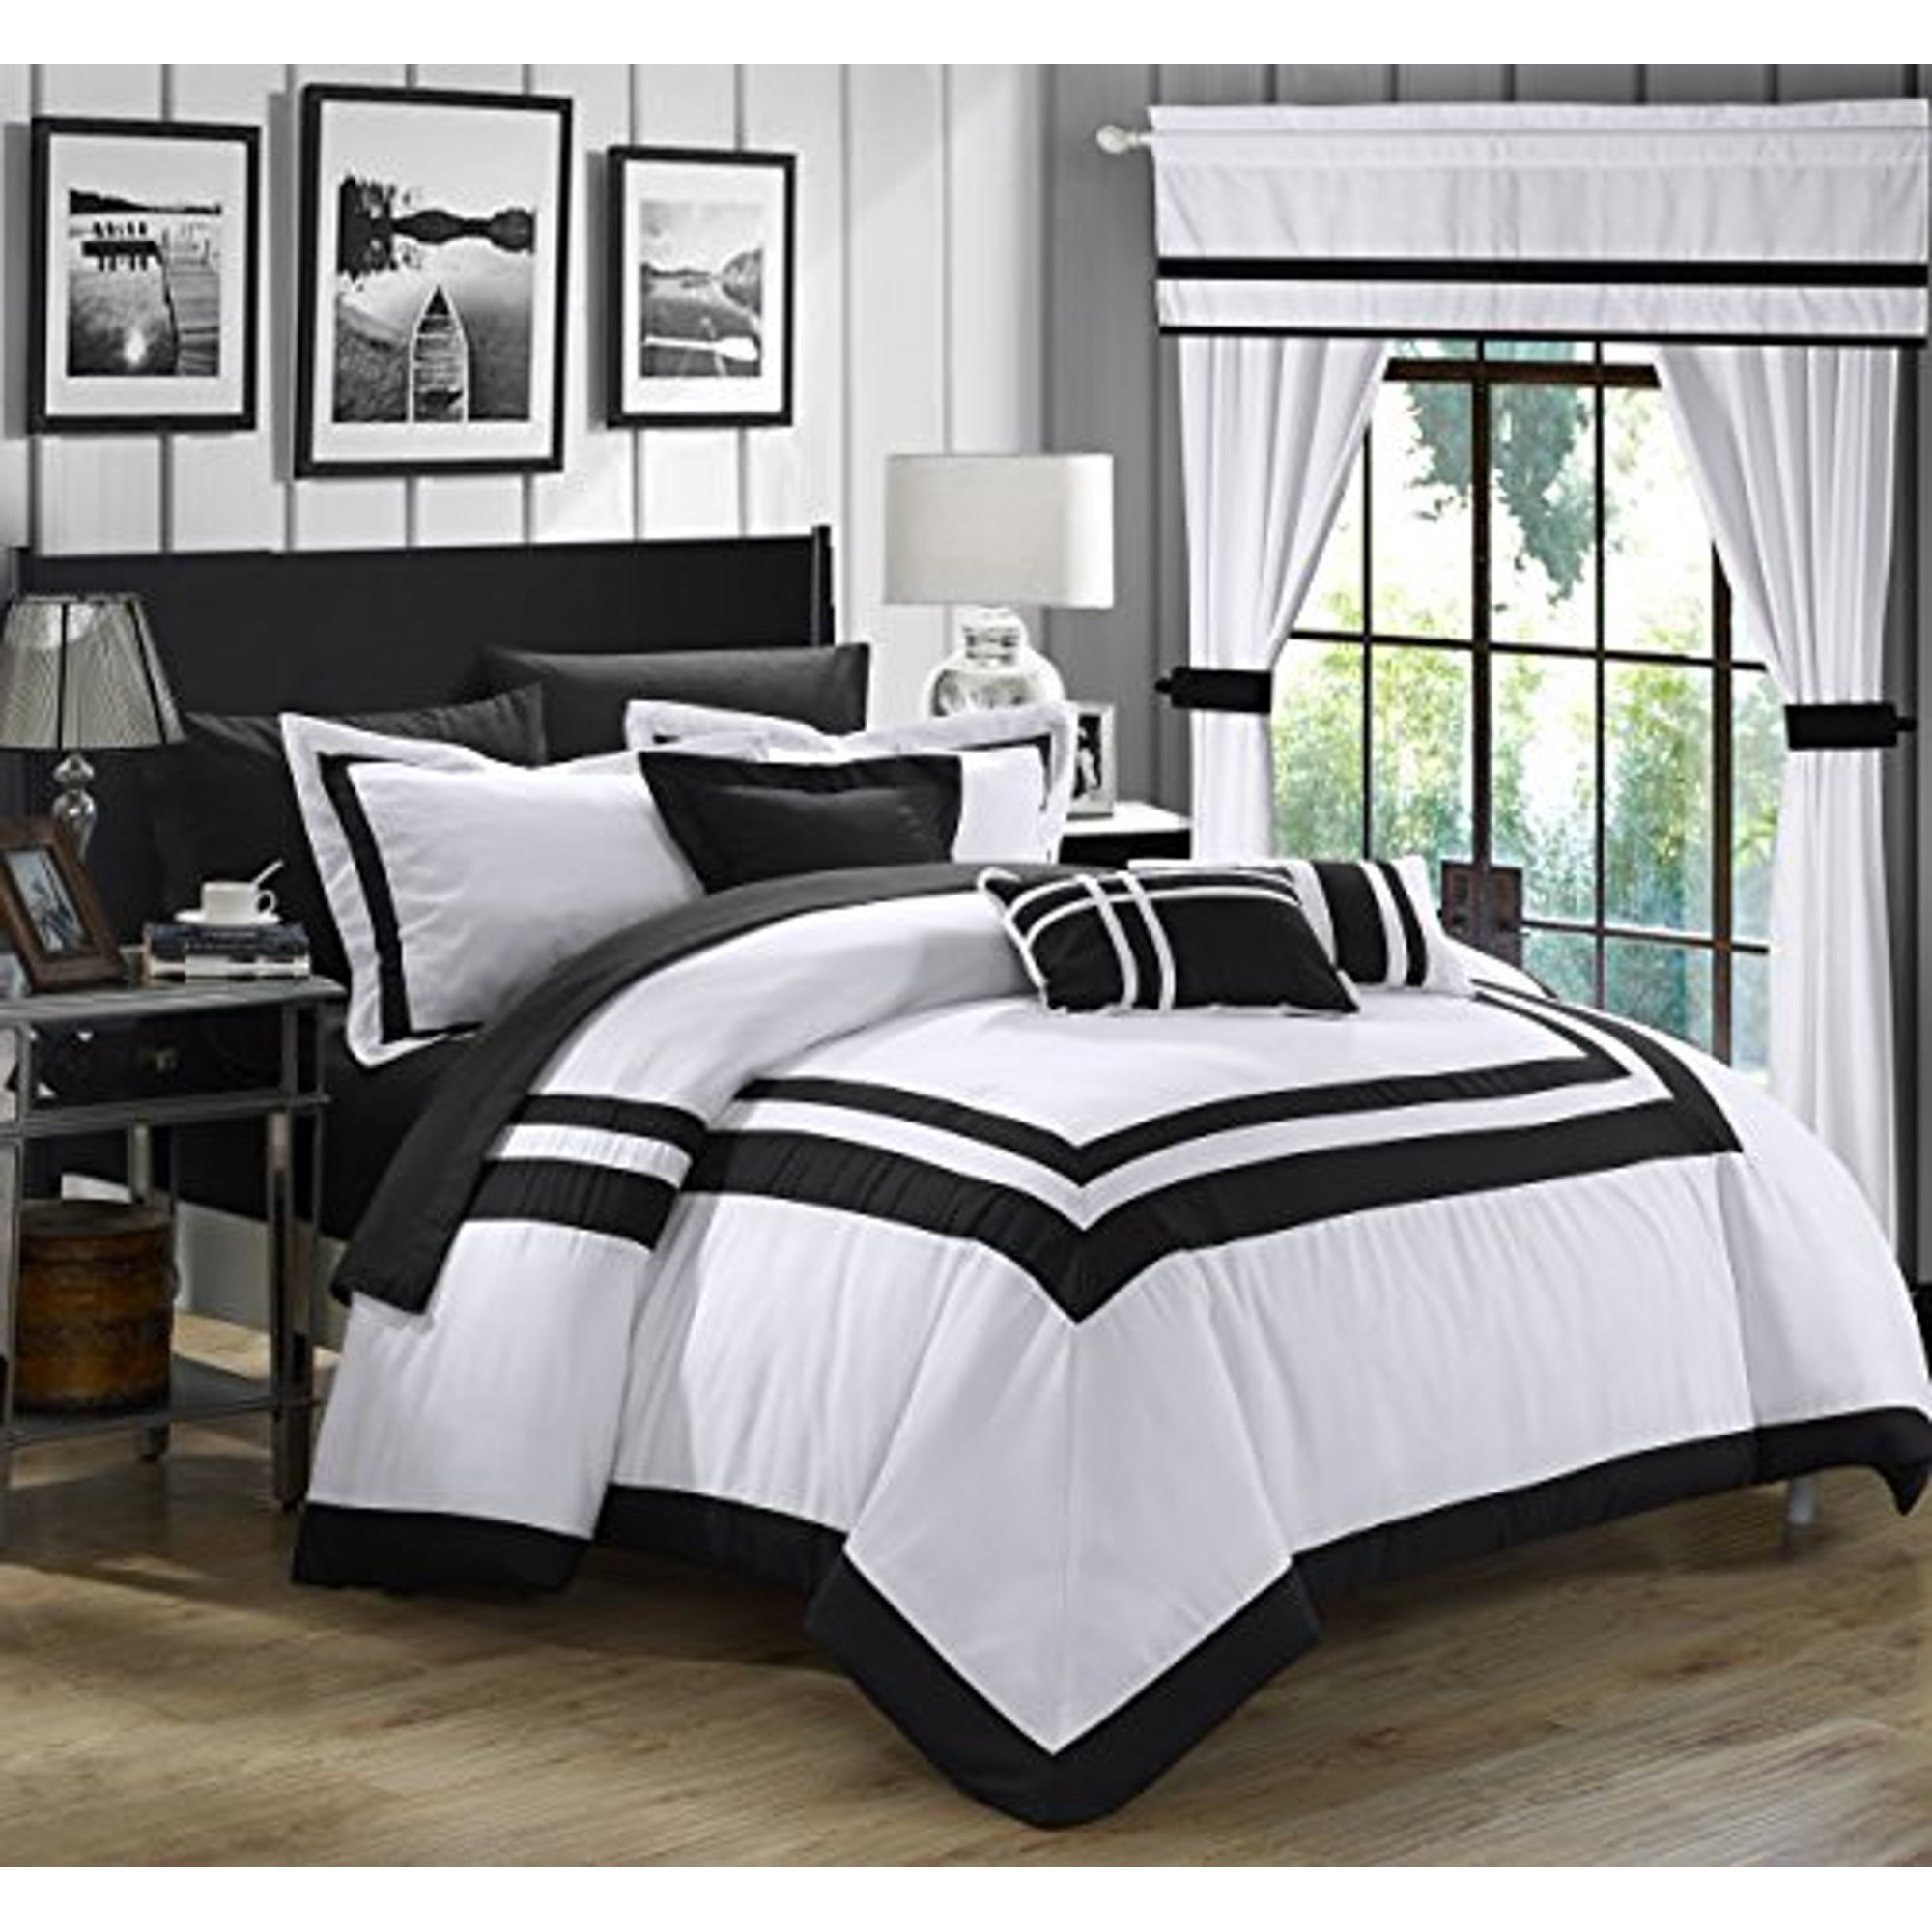 Chic Home Ritz 20 Piece Comforter Set Color Block Bed In A Bag With Sheets Curtains Queen White Walmart Canada